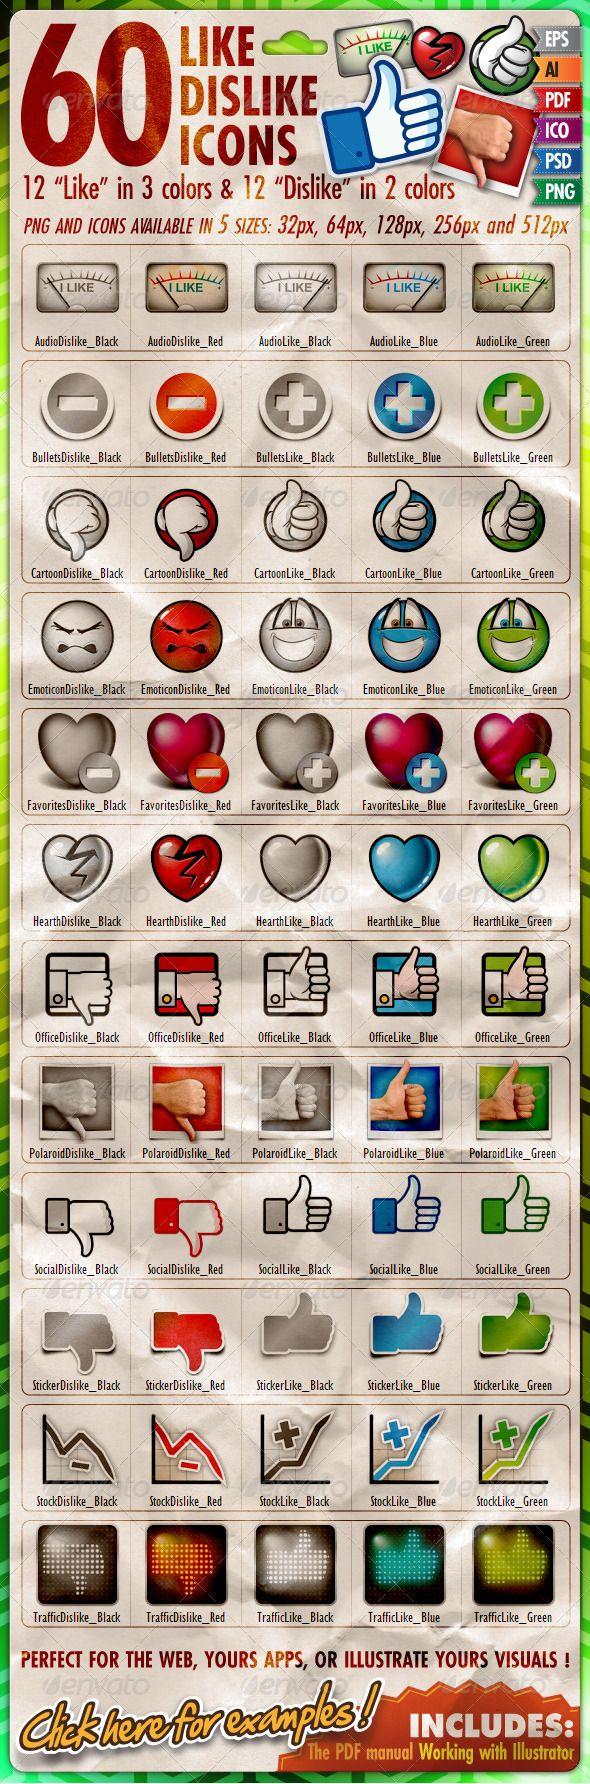 """60 Like/Dislike Icons  #GraphicRiver        PERFECT FOR AD, WEB, APPS, GAMES OR ILLUSATION !  """"60 Like Dislike Icons"""" is a great collection of 12 themes build on the same pattern: 2 Dislike icons available in red and black, and 3 Like icons in blue, green and black. Each icon are available in vectorial format: AI, EPS, and PDF, and bitmatdata from 32 to 512 pixels (PSD, PNG and ICO). The icons using a hand (Cartoon, Office, Polaroid, Social, Stiker and Traffic) are not simply mirror effect…"""